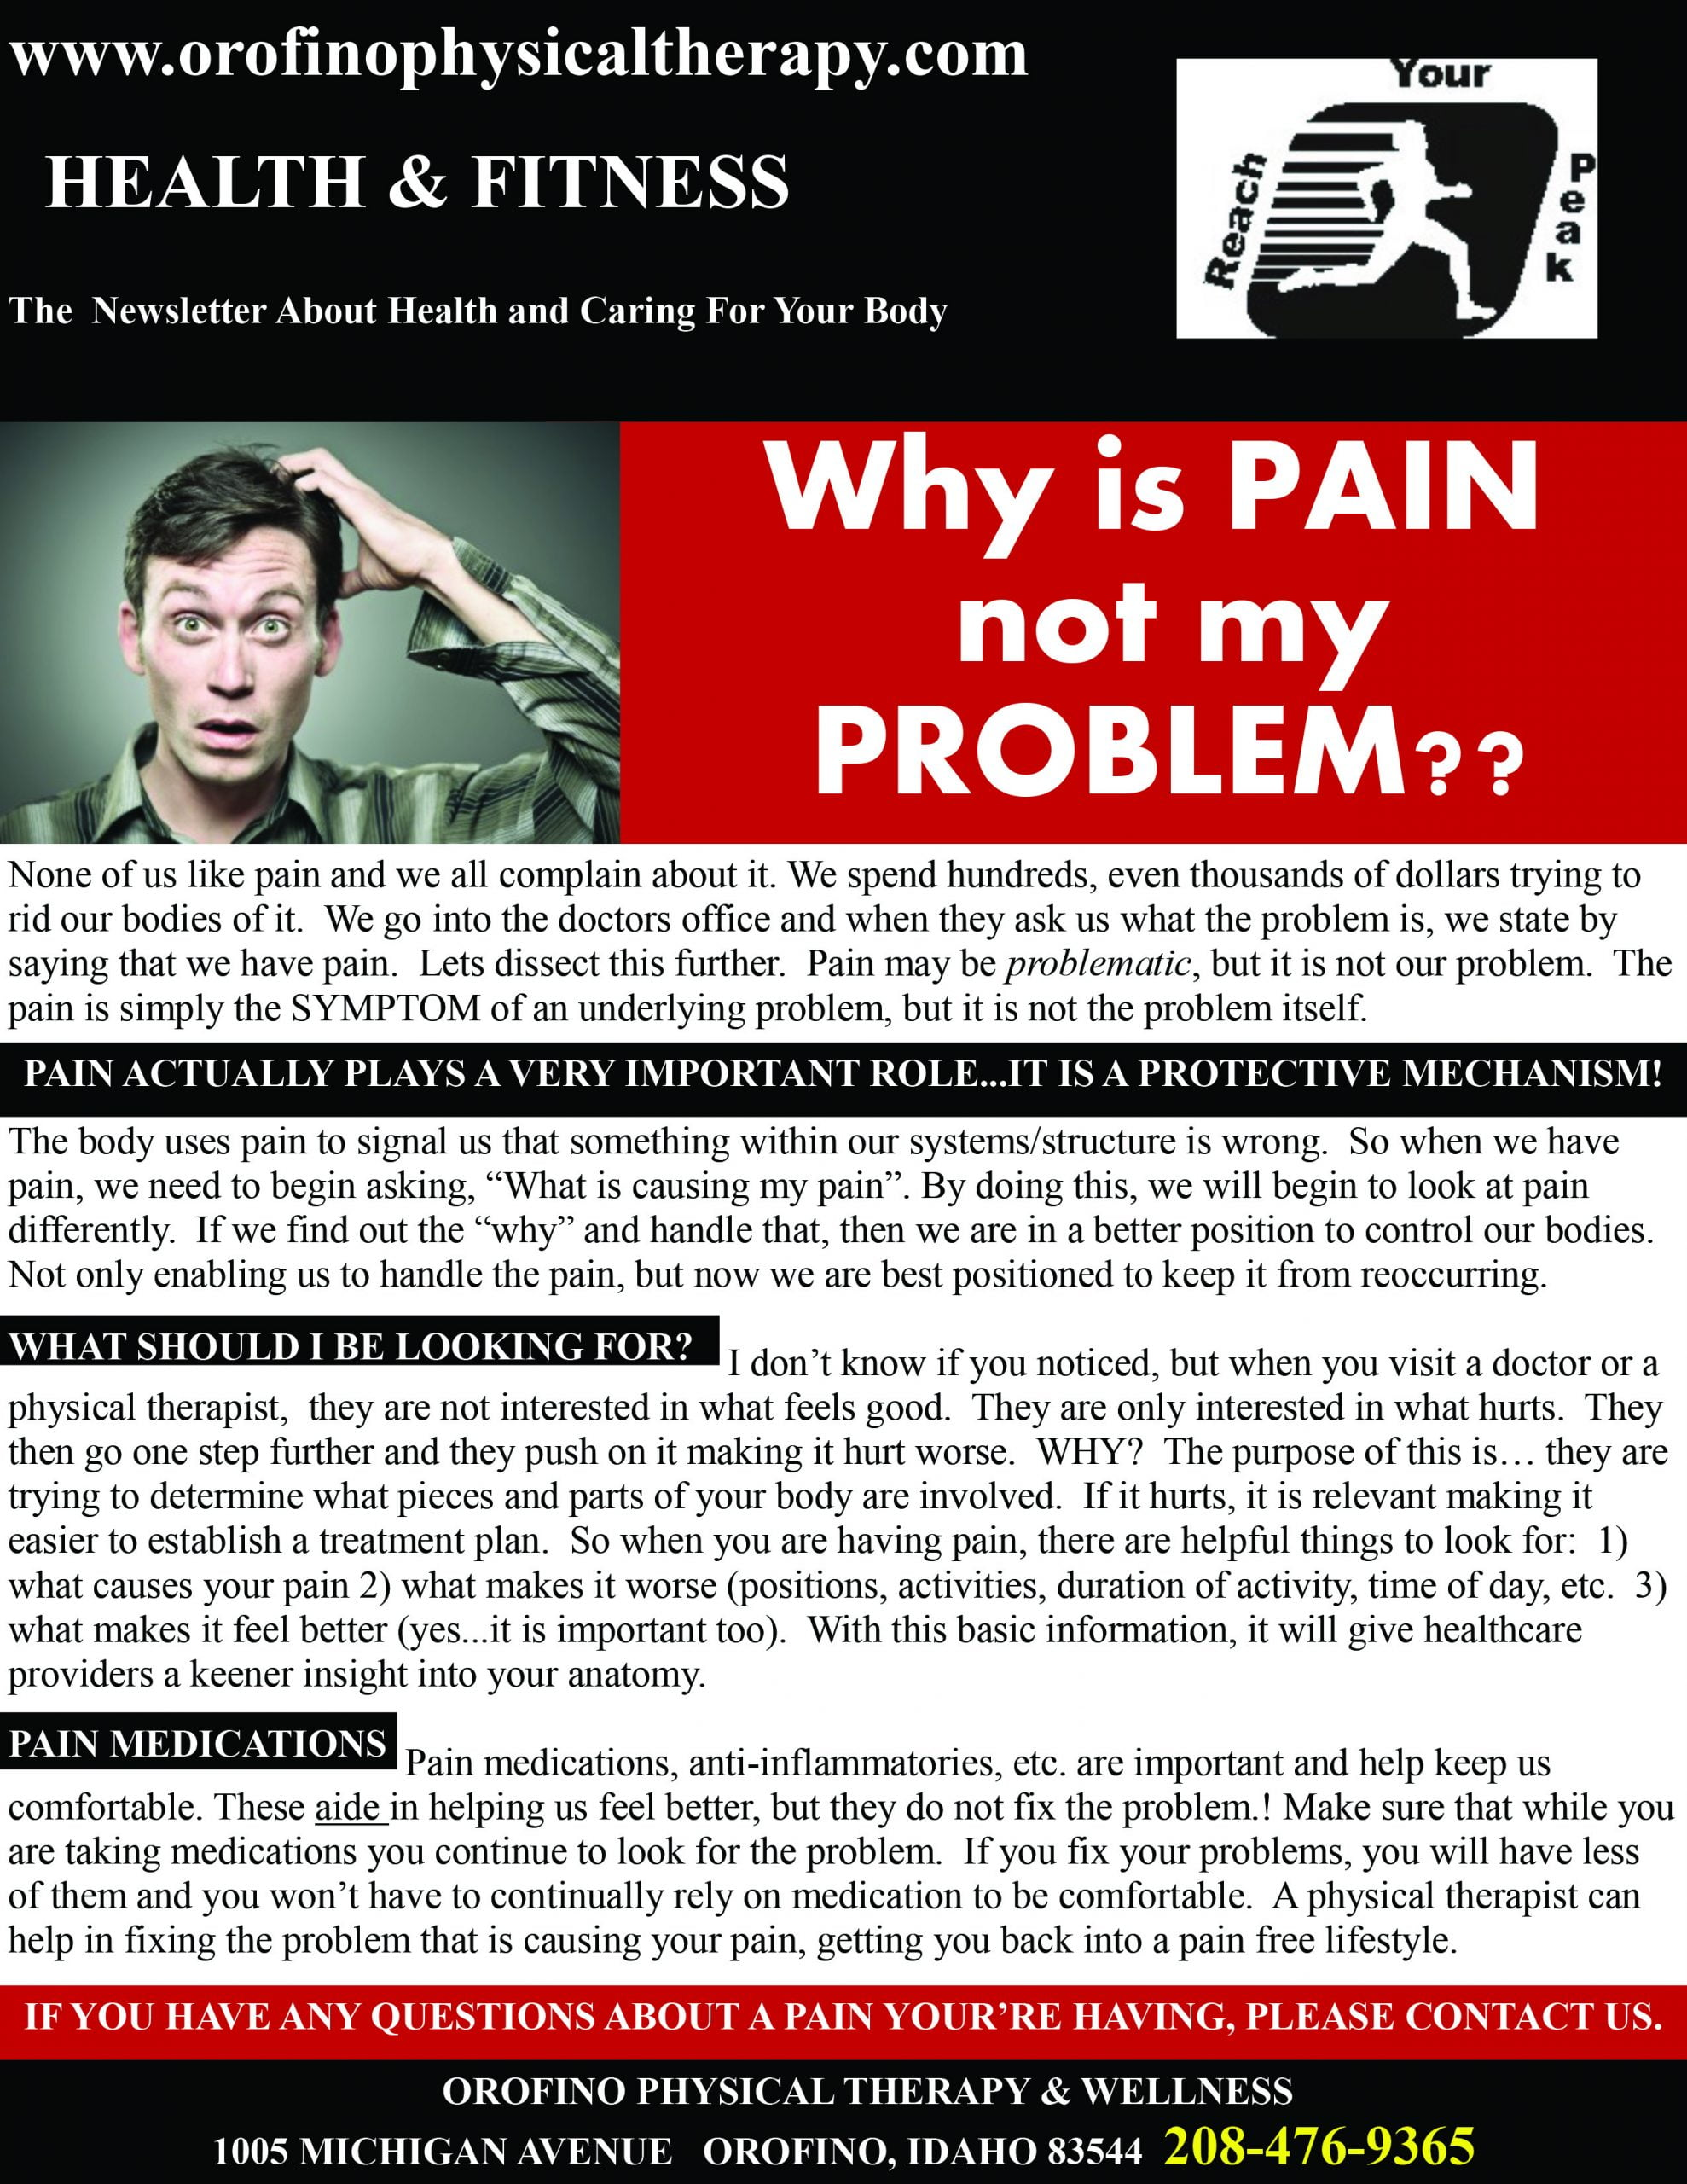 Why is Pain not my problem